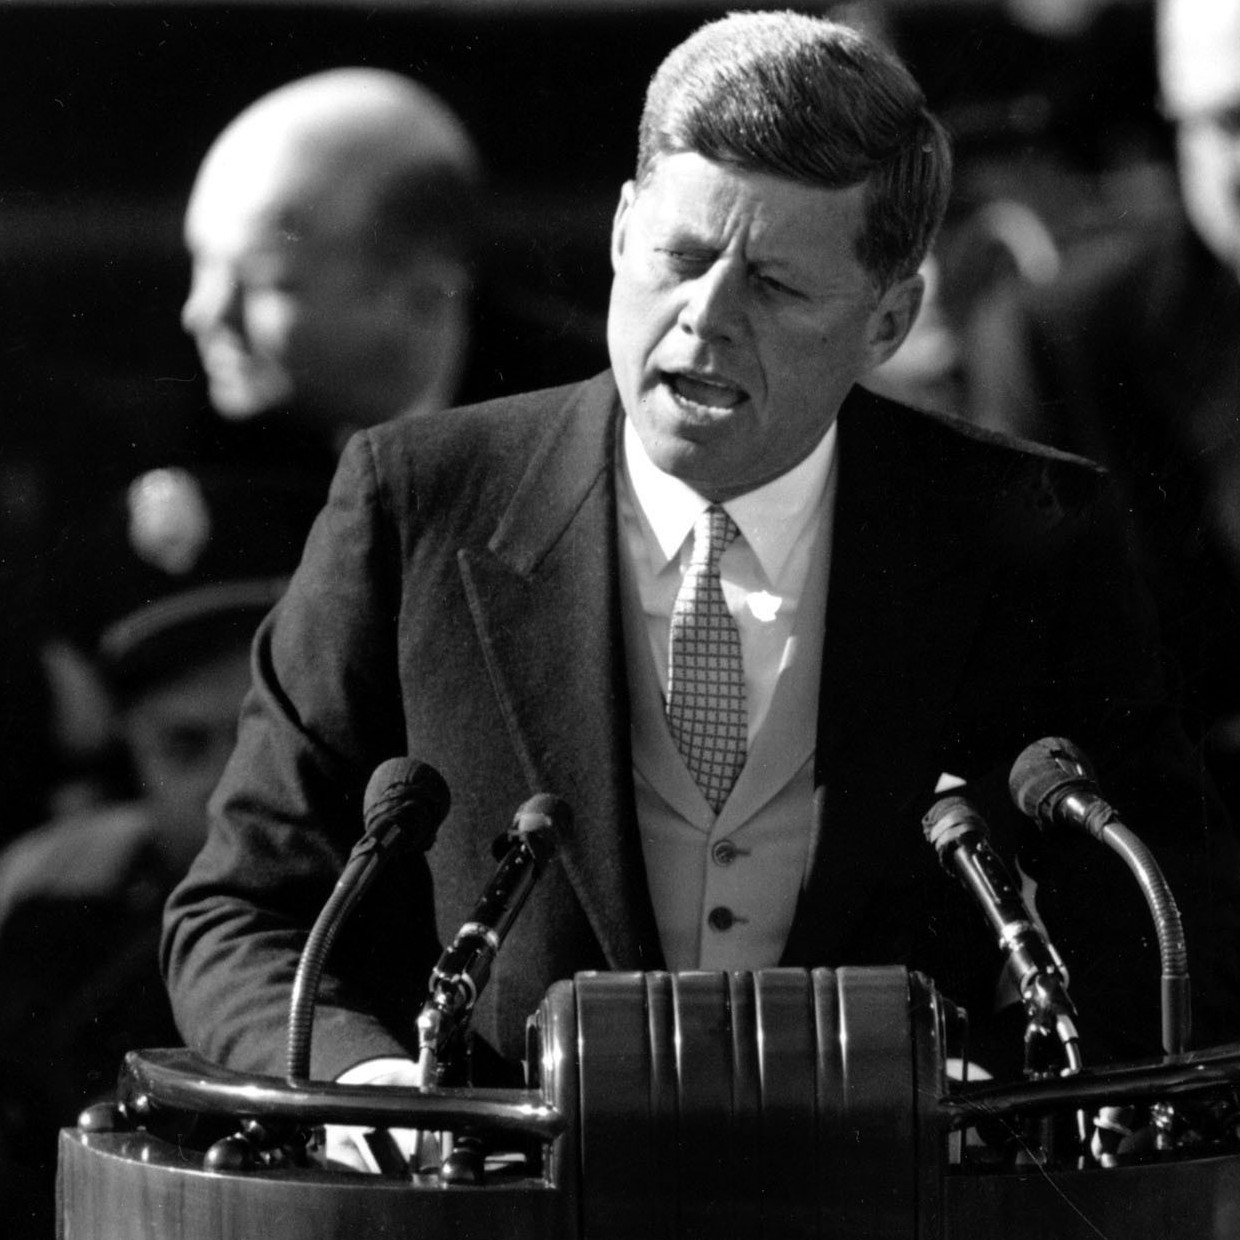 President John F. Kennedy delivers his inaugural address after taking the oath of office on Jan. 20, 1961.